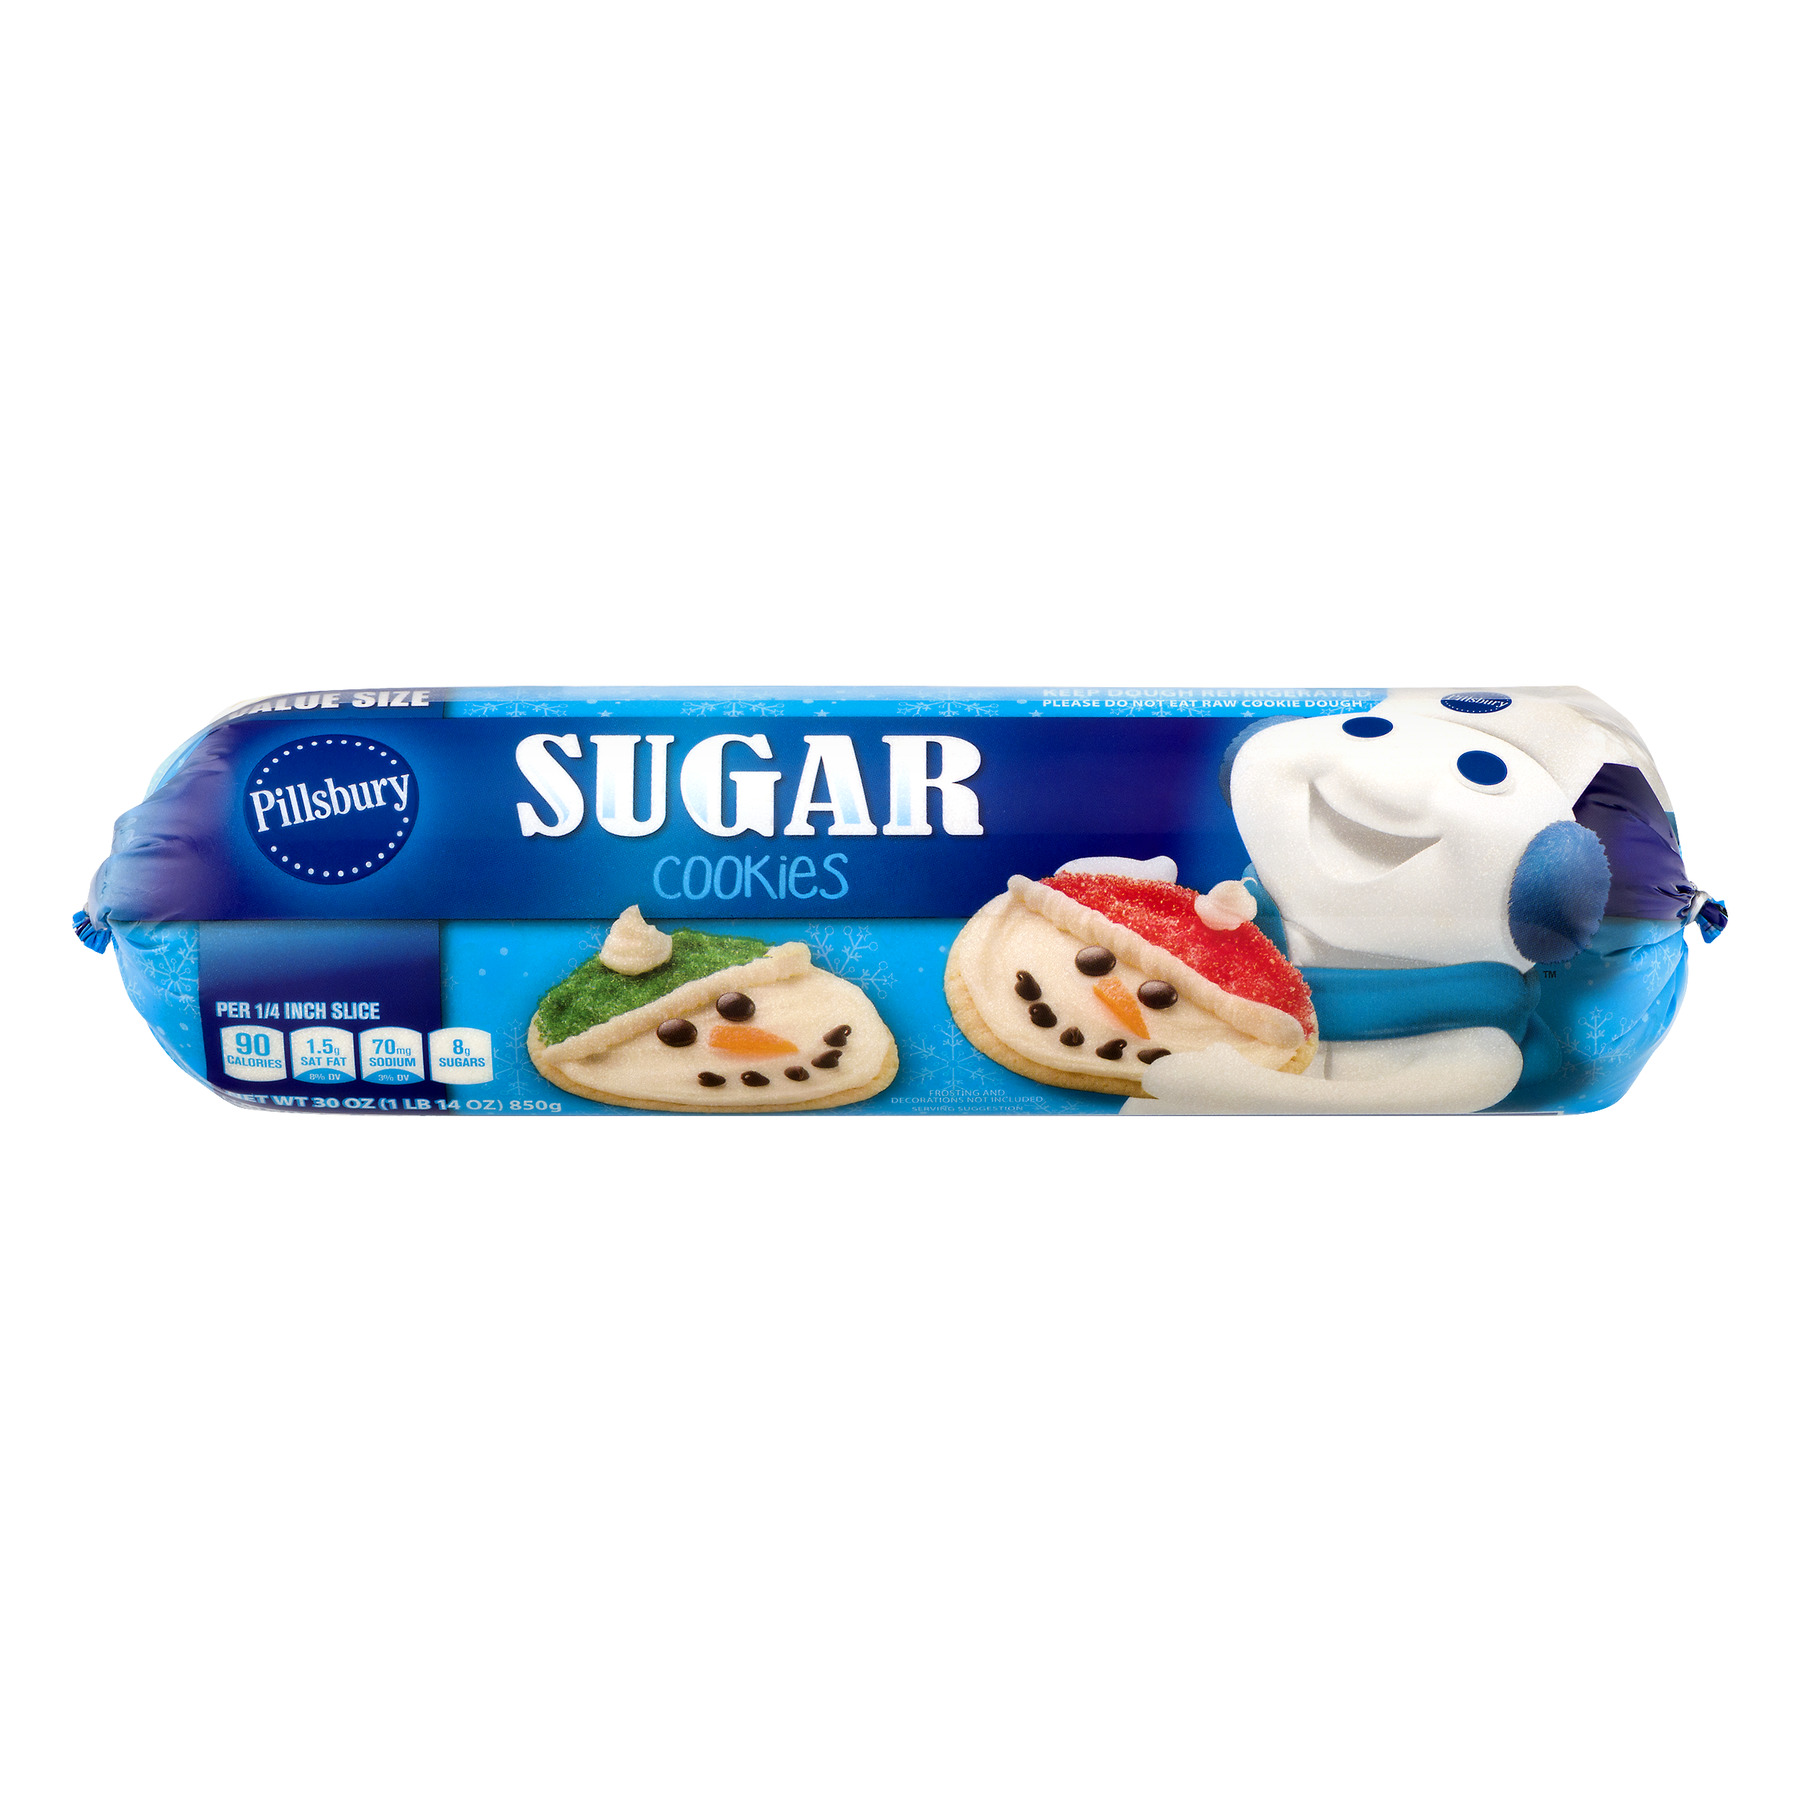 Pillsbury Sugar Cookies 30 oz. Chub